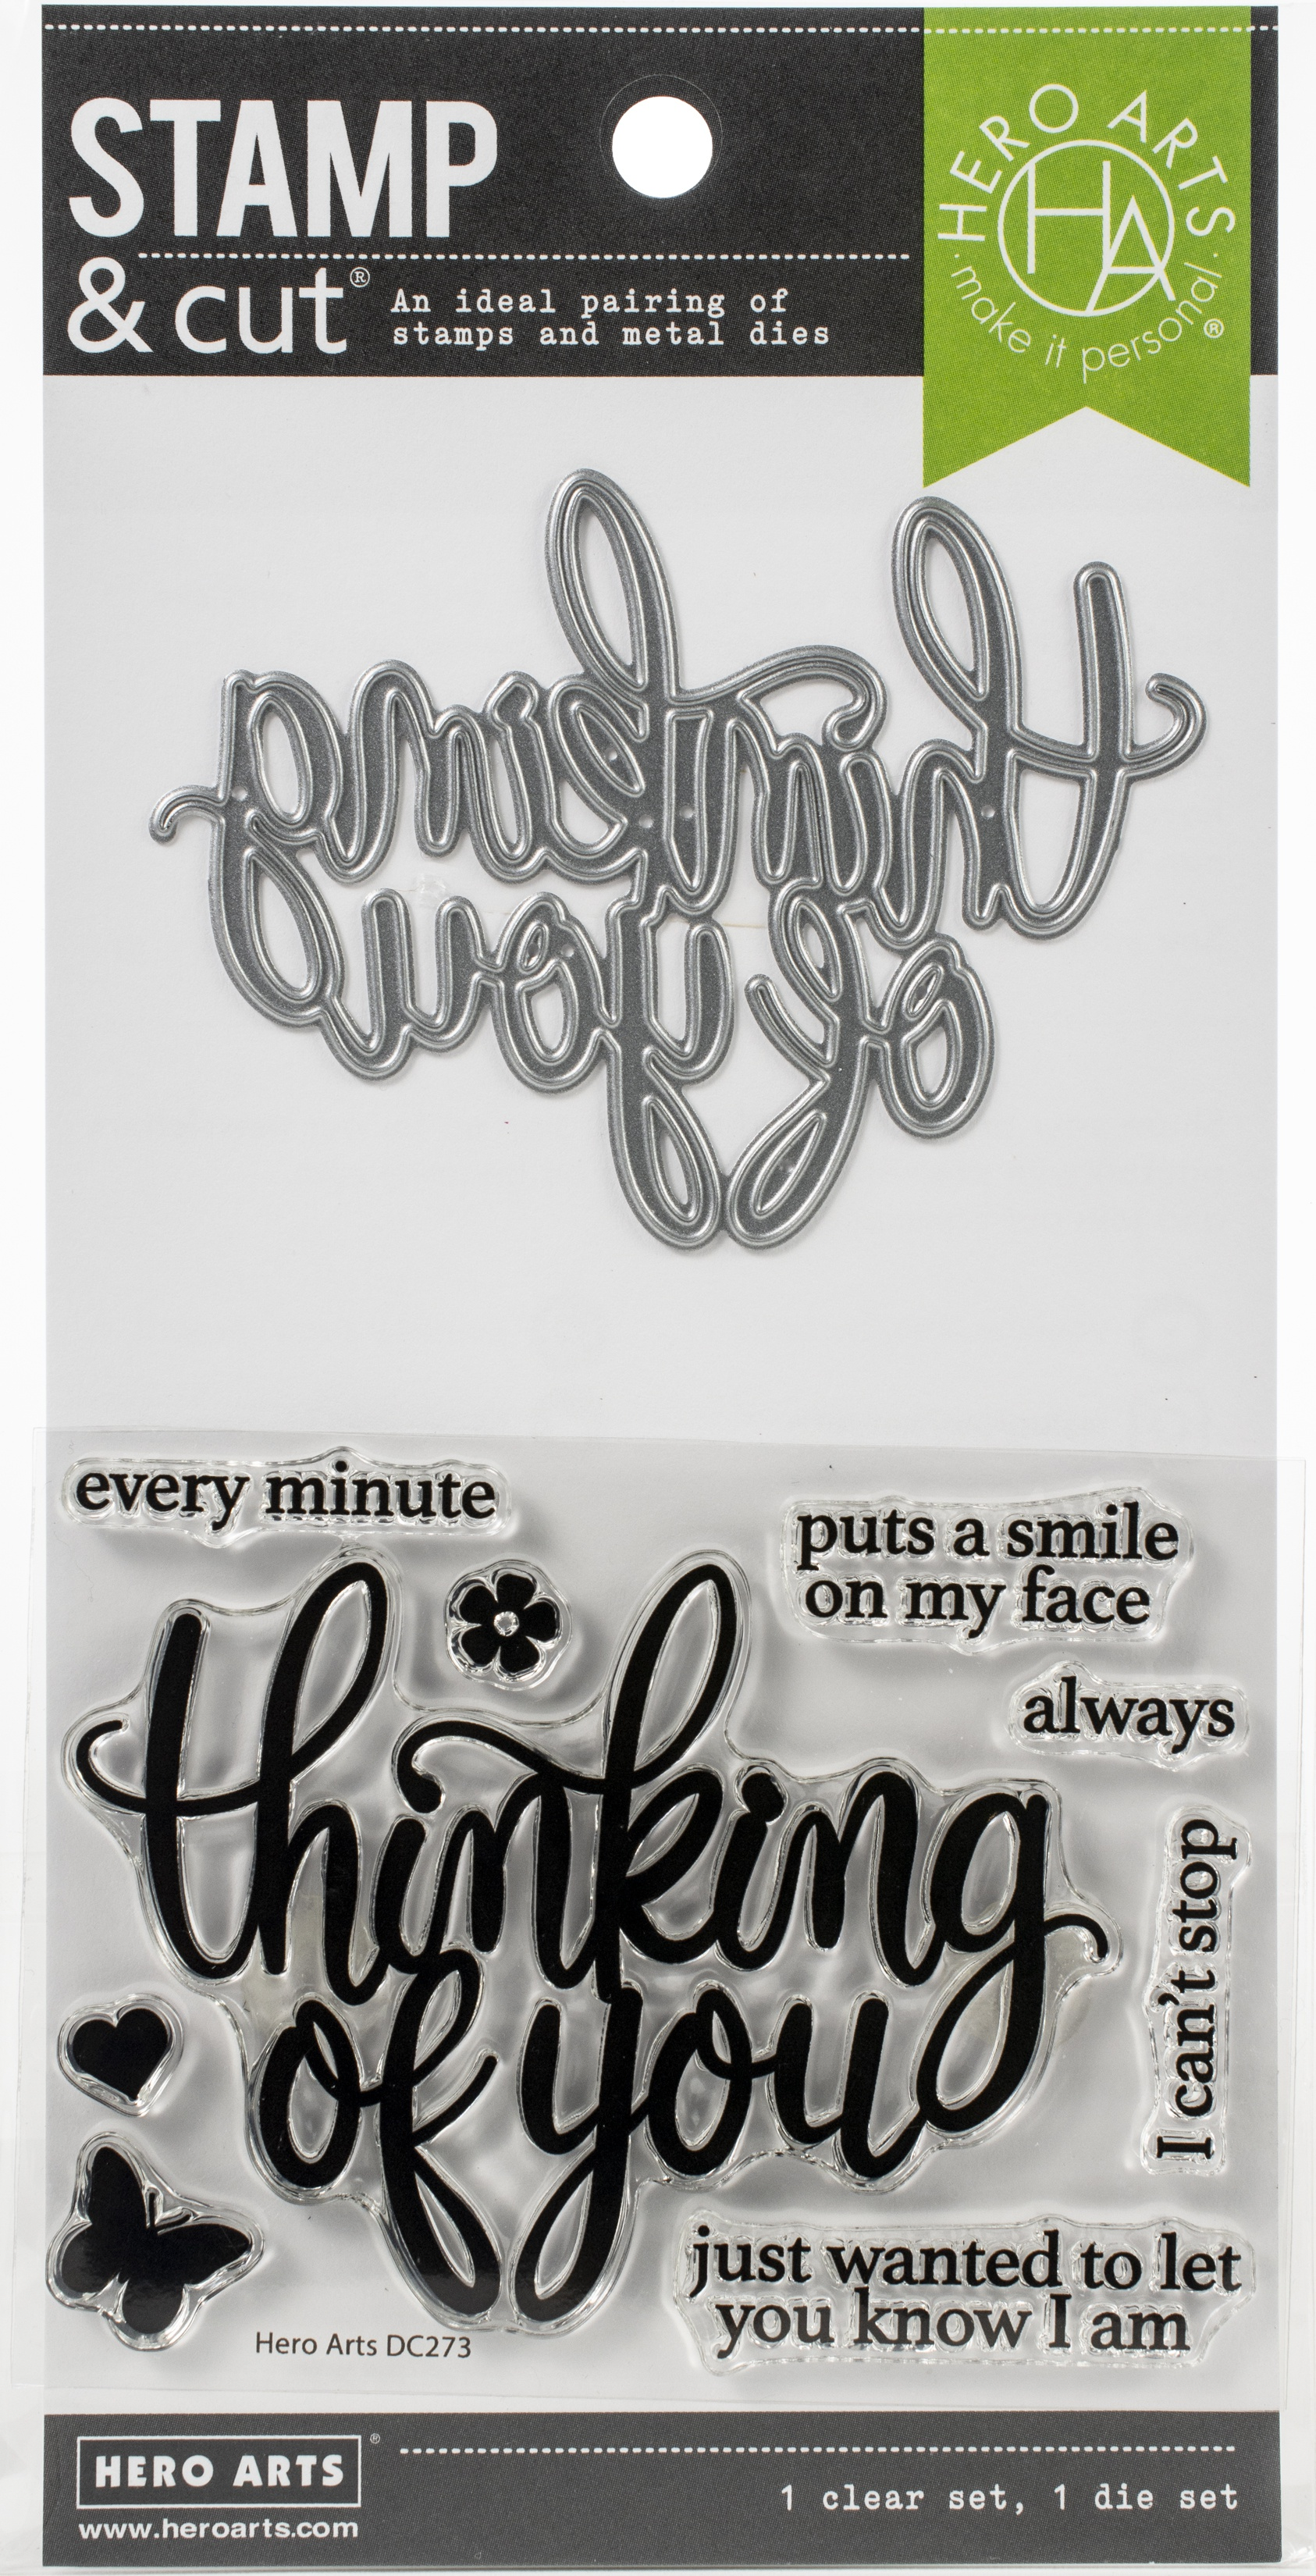 Hero Arts Stamp & Cut - Thinking Of You